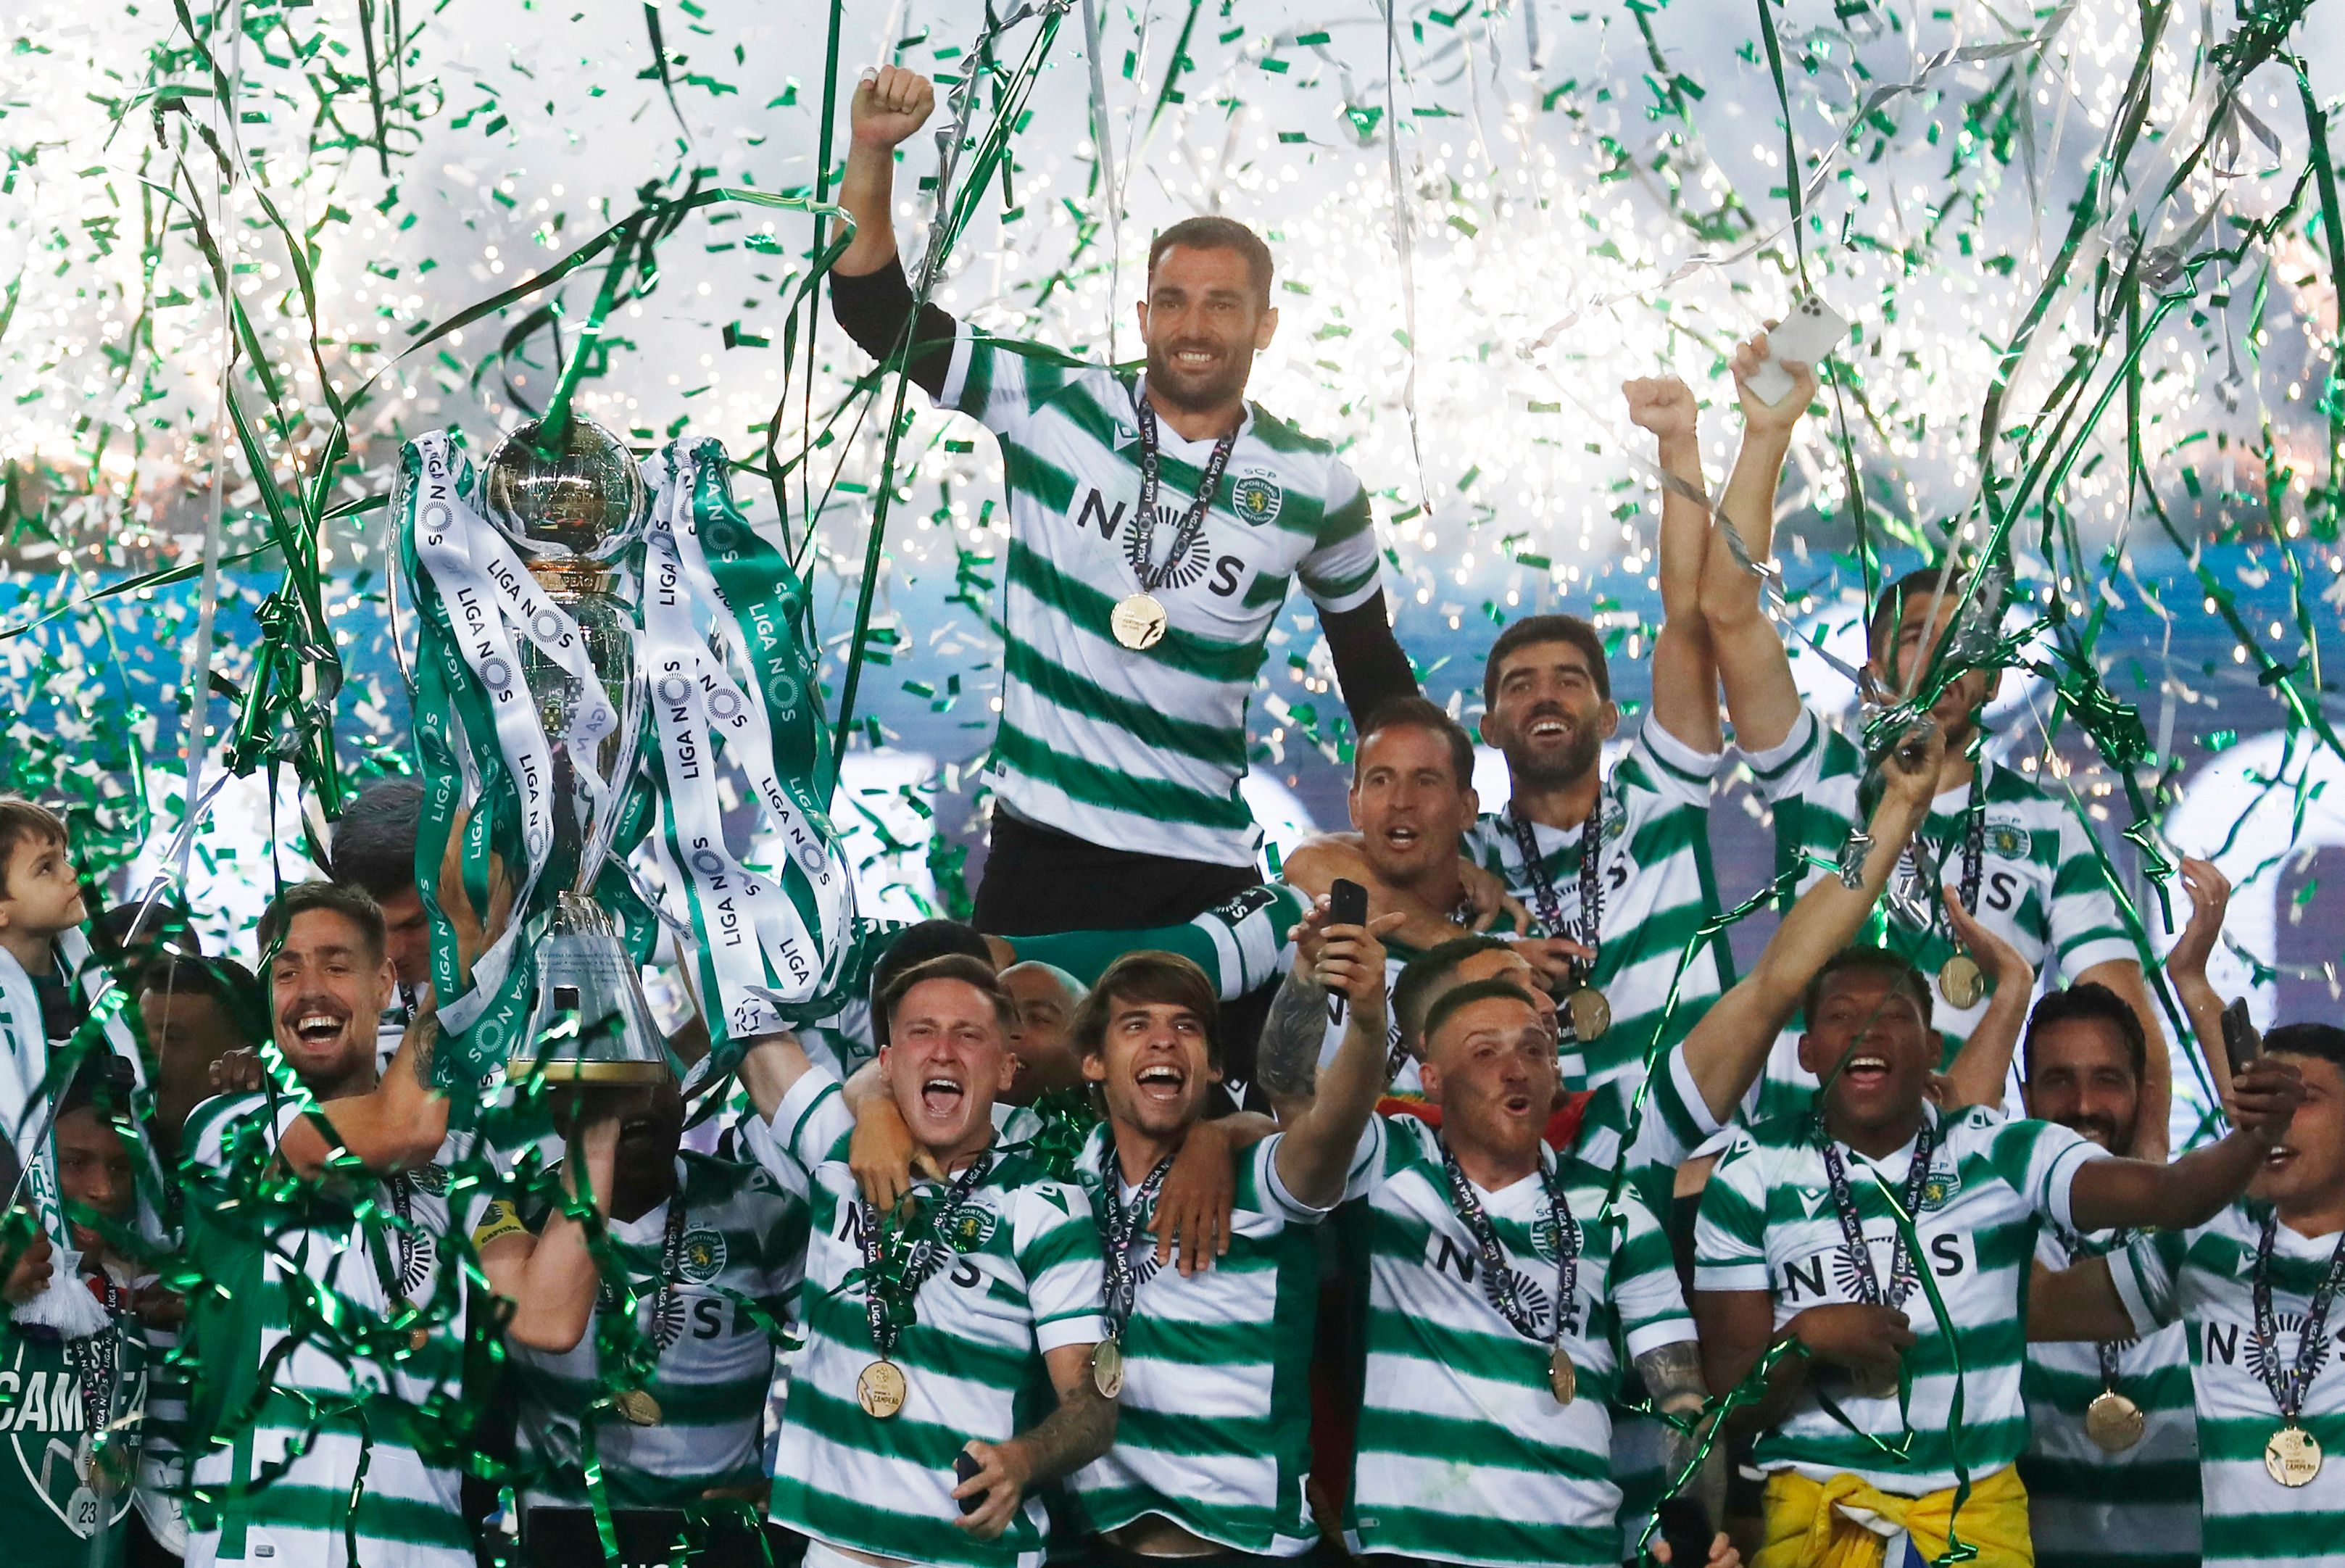 Sporting title celebrations marred as fans clash with riot police | Reuters